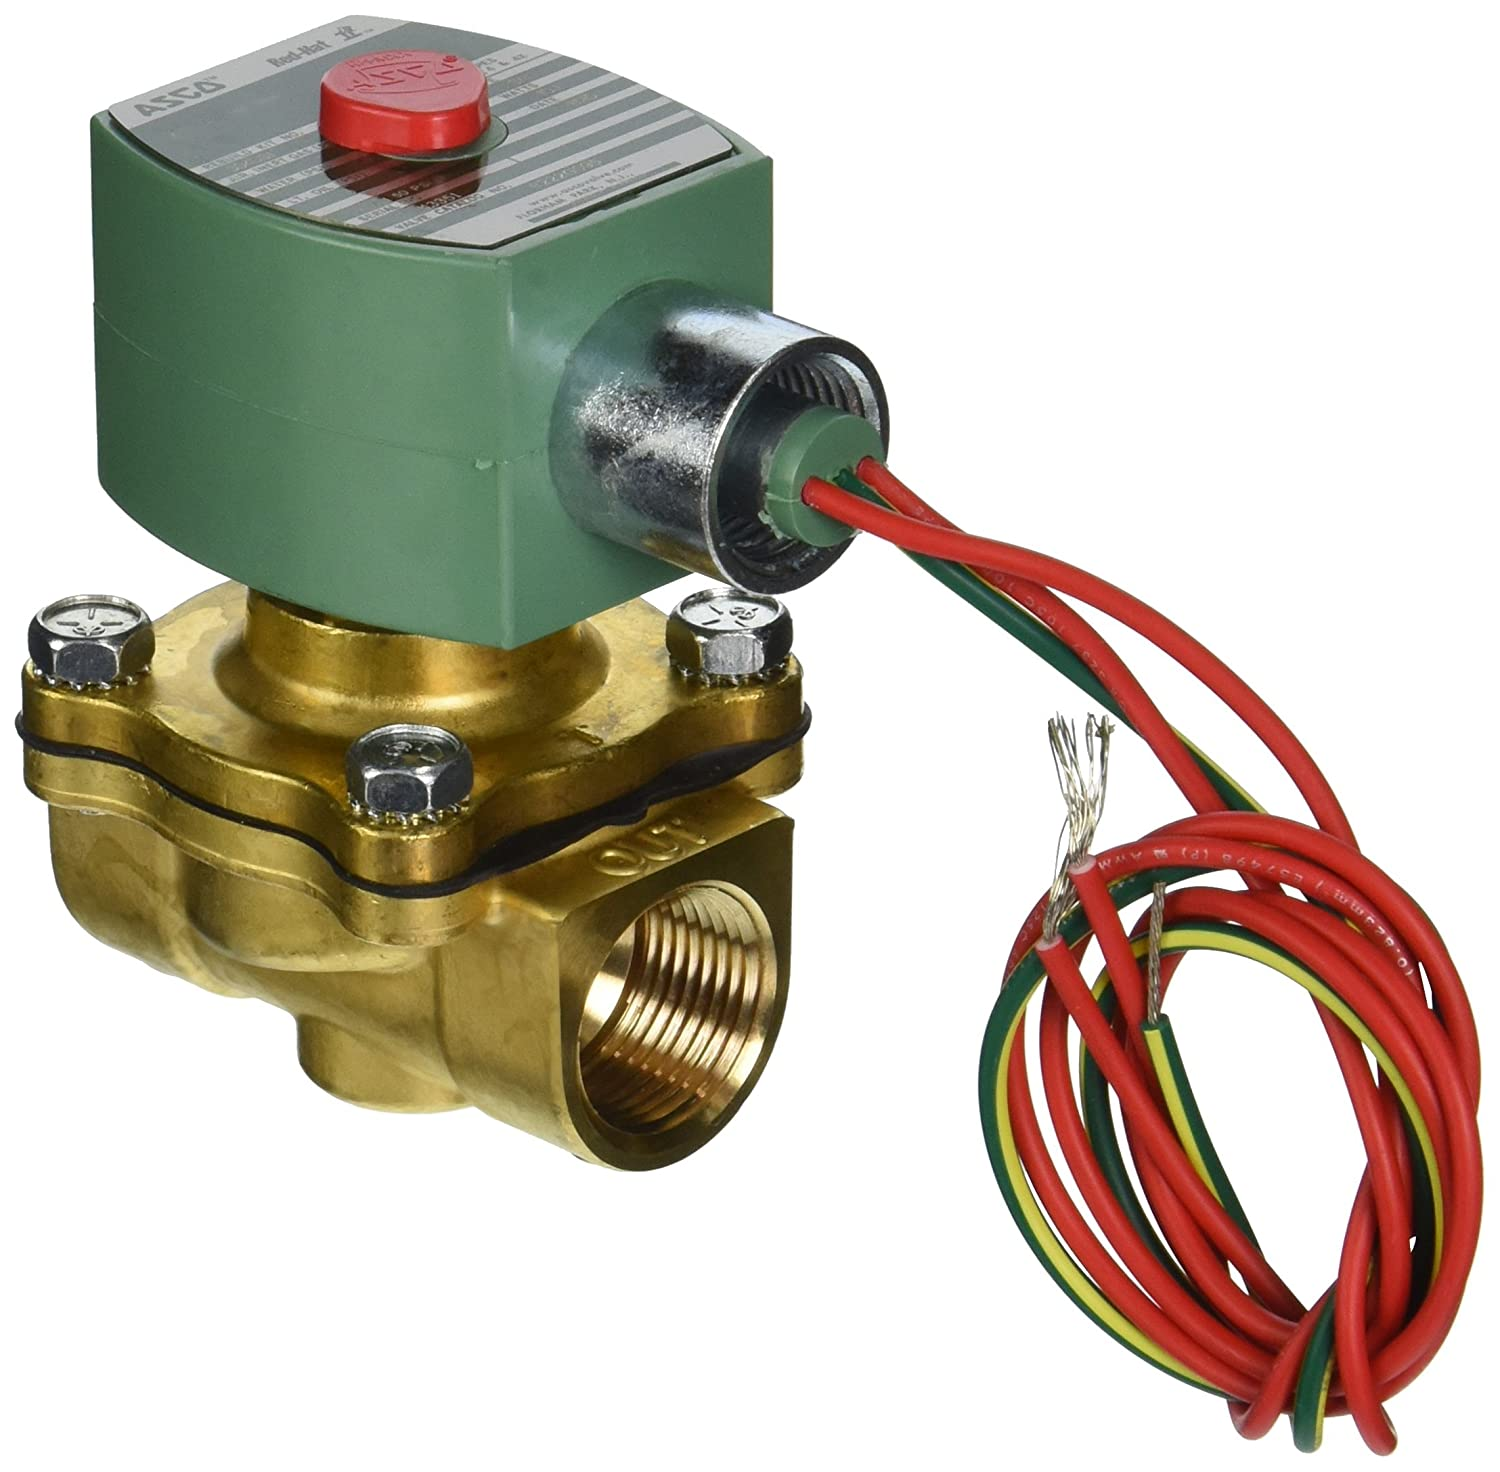 ASCO 8220G407-24//60 Brass Body Hot Water and Steam Pilot Operated Diaphragm and Piston Valve 50 psi Maximum Steam Operating Pressure 2-Way Normally Closed 3//4 Pipe Size 8.8 Cv Flow EPDM//PTFE Sealing 24V//60 Hz 3//4 Pipe Size 21924 3//4 Orifice